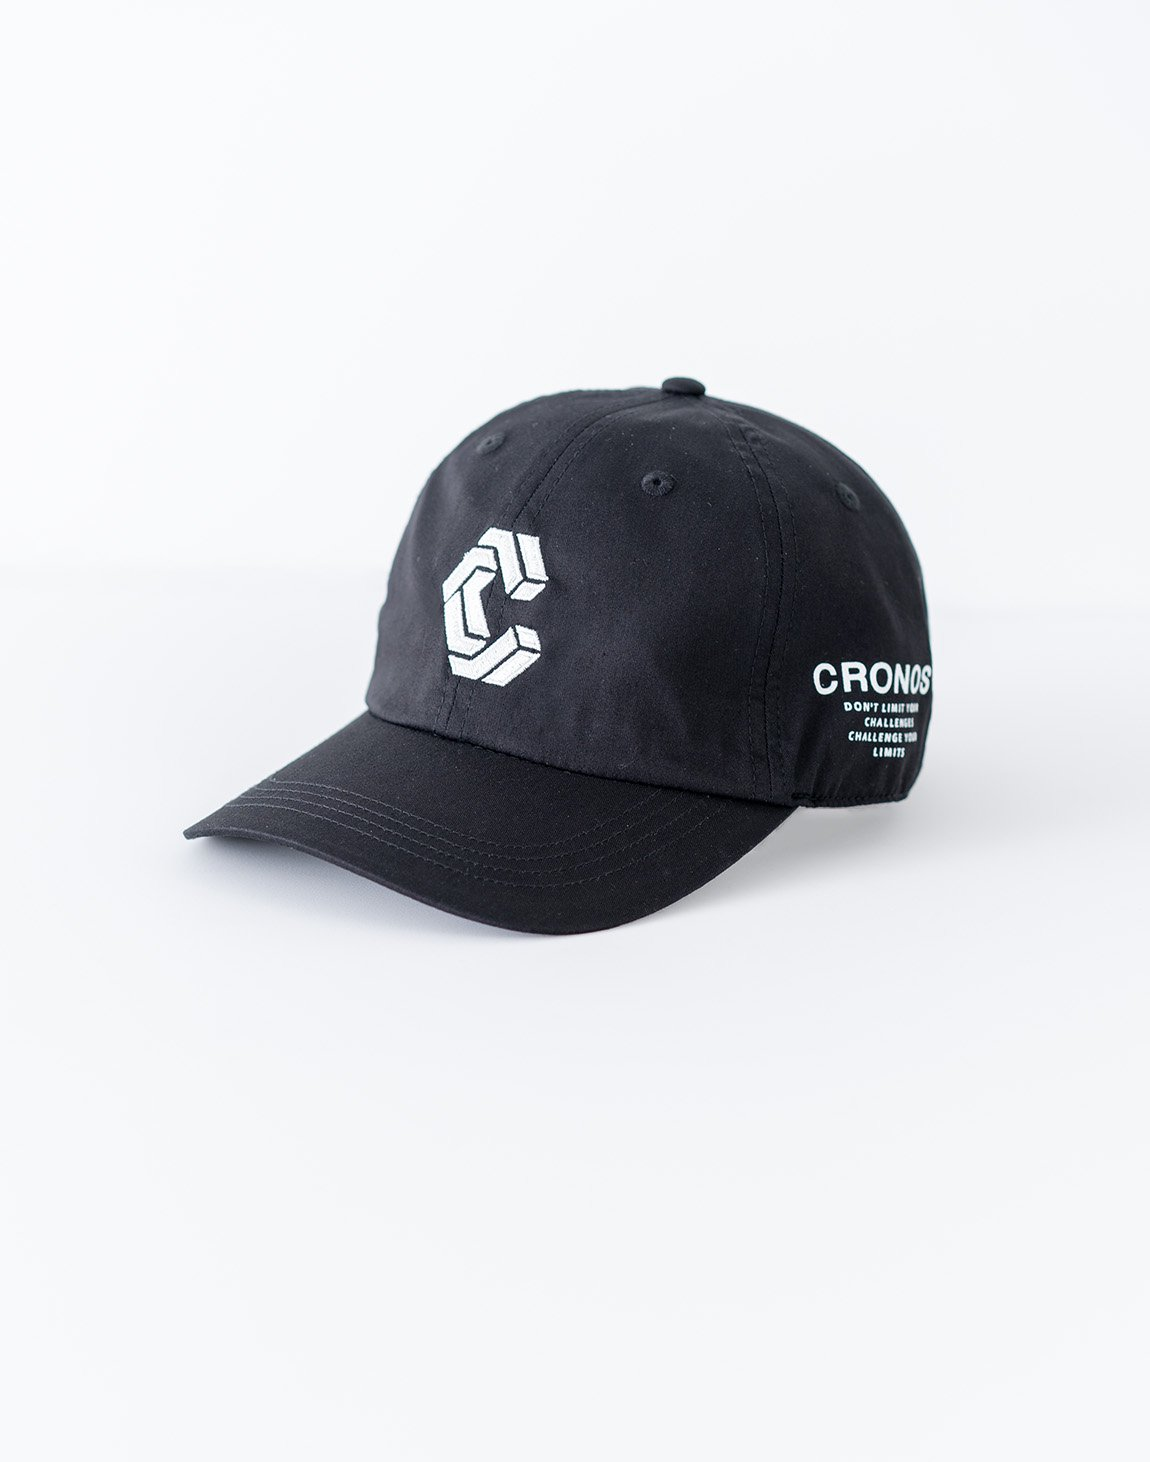 <img class='new_mark_img1' src='https://img.shop-pro.jp/img/new/icons55.gif' style='border:none;display:inline;margin:0px;padding:0px;width:auto;' />CRONOS Logo Cap-BLACK